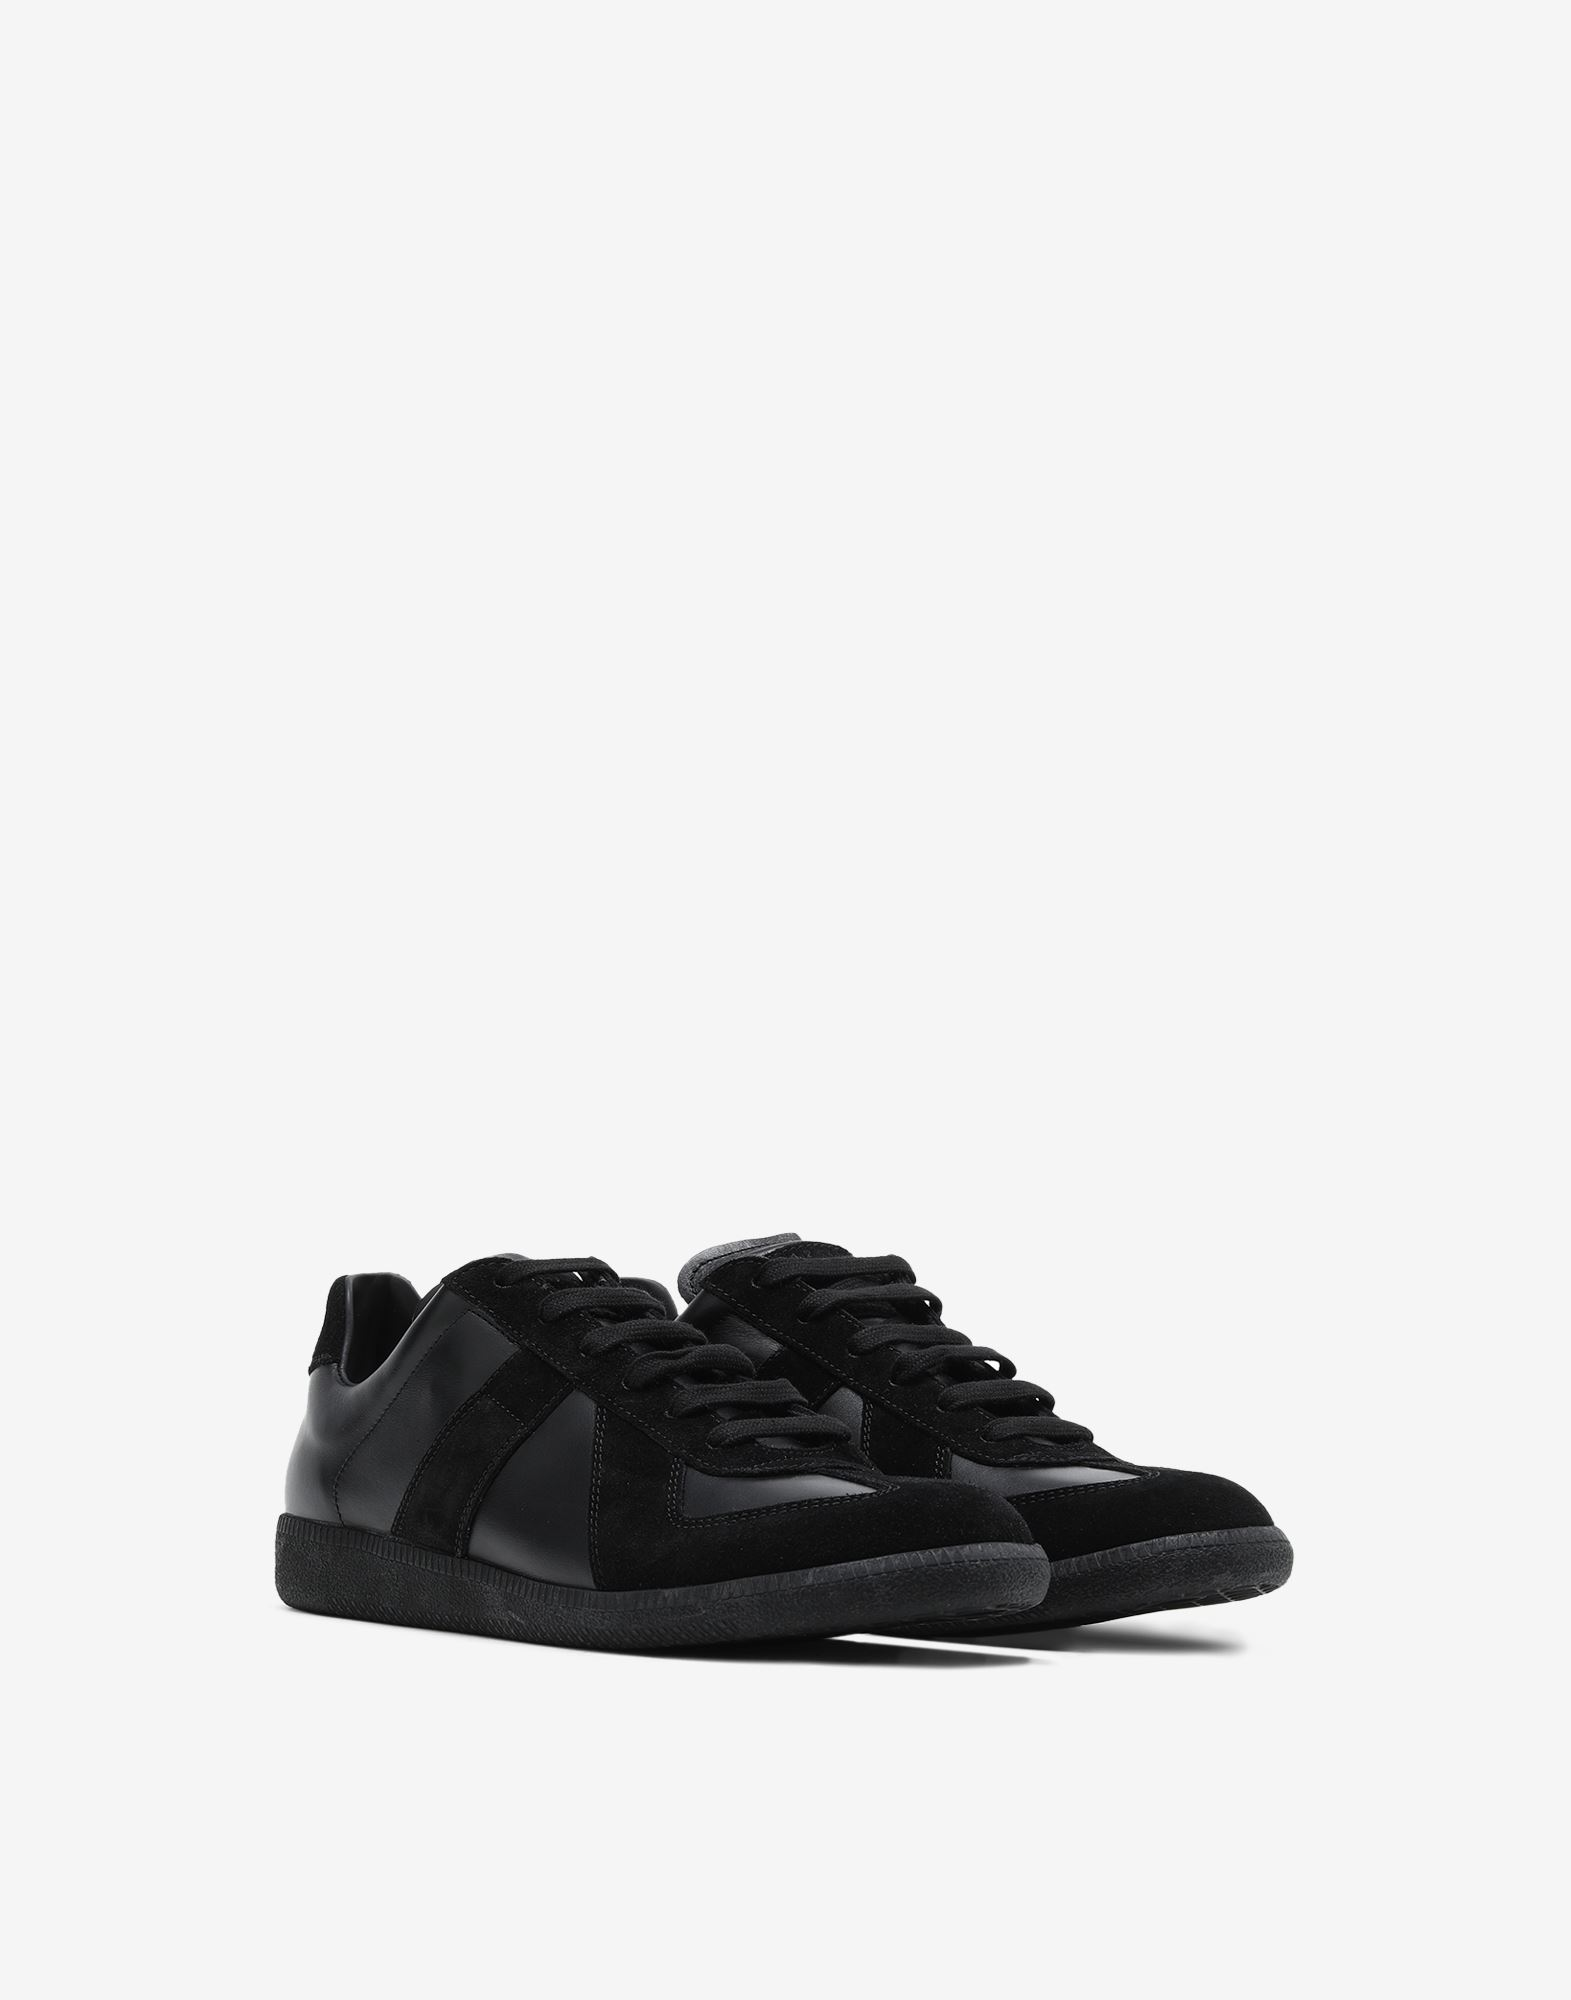 MAISON MARGIELA Low top calfskin Replica sneakers Sneakers Man r